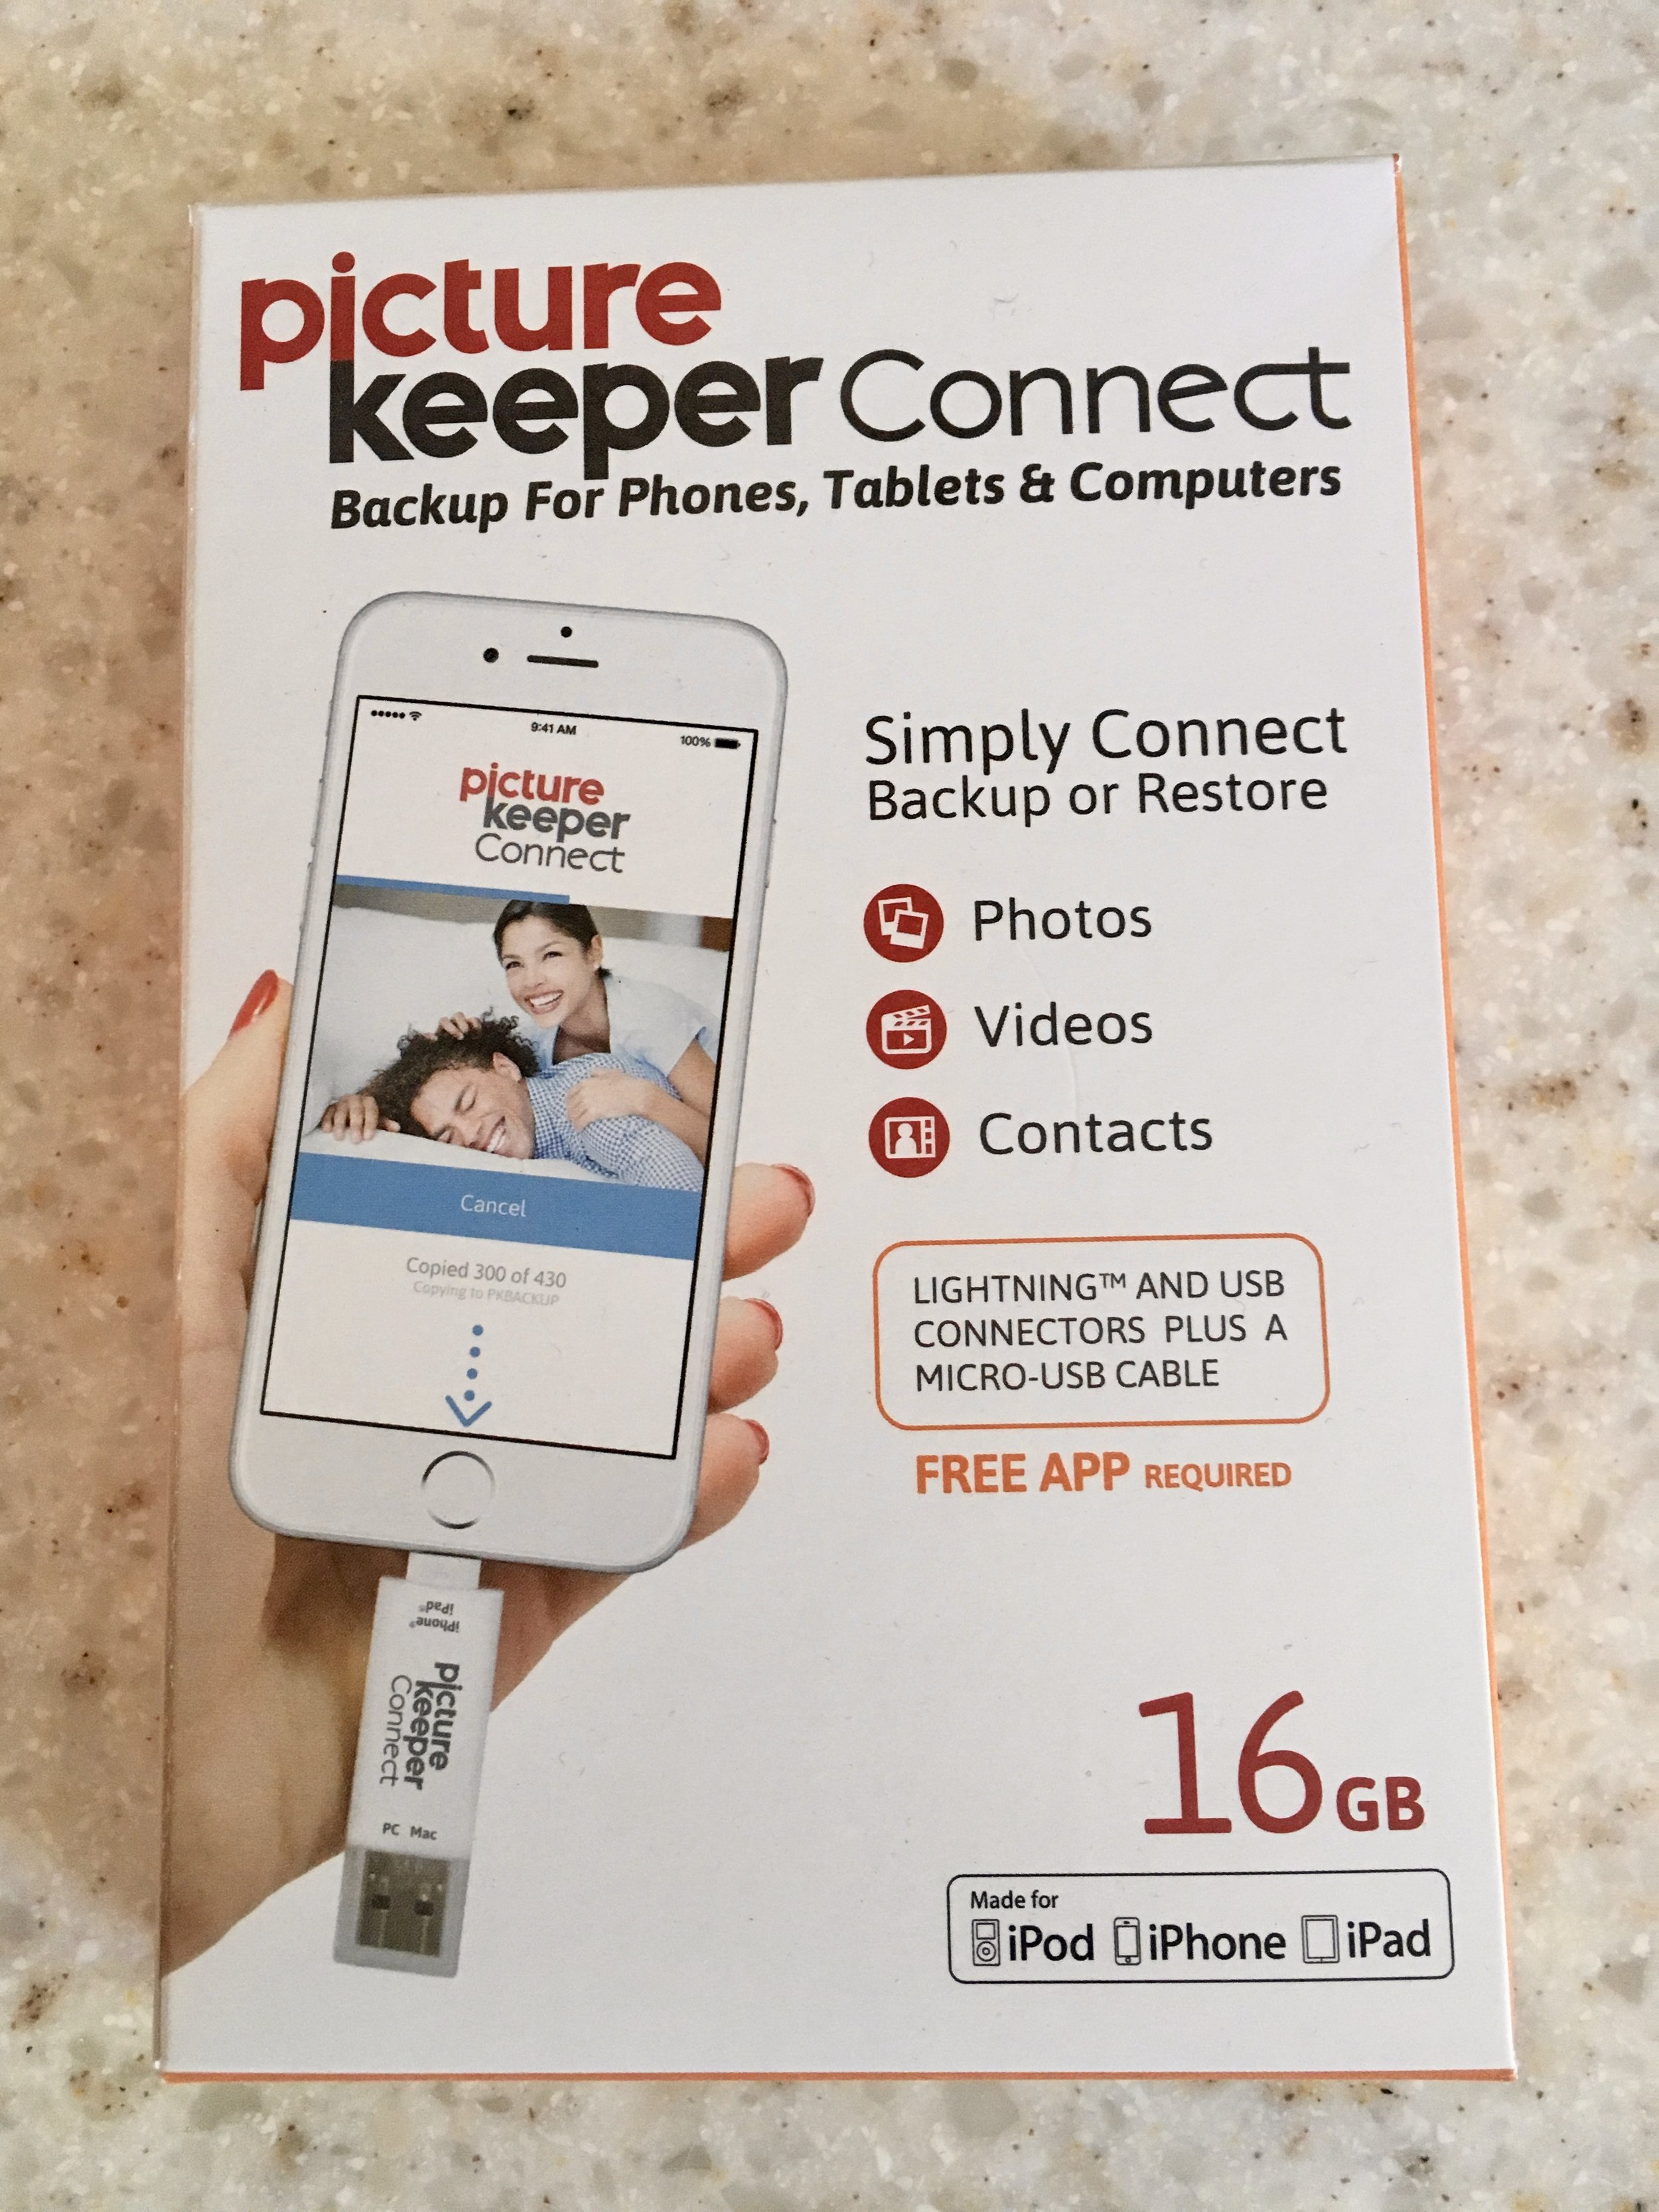 picture keeper connect - whatthegirlssay.com